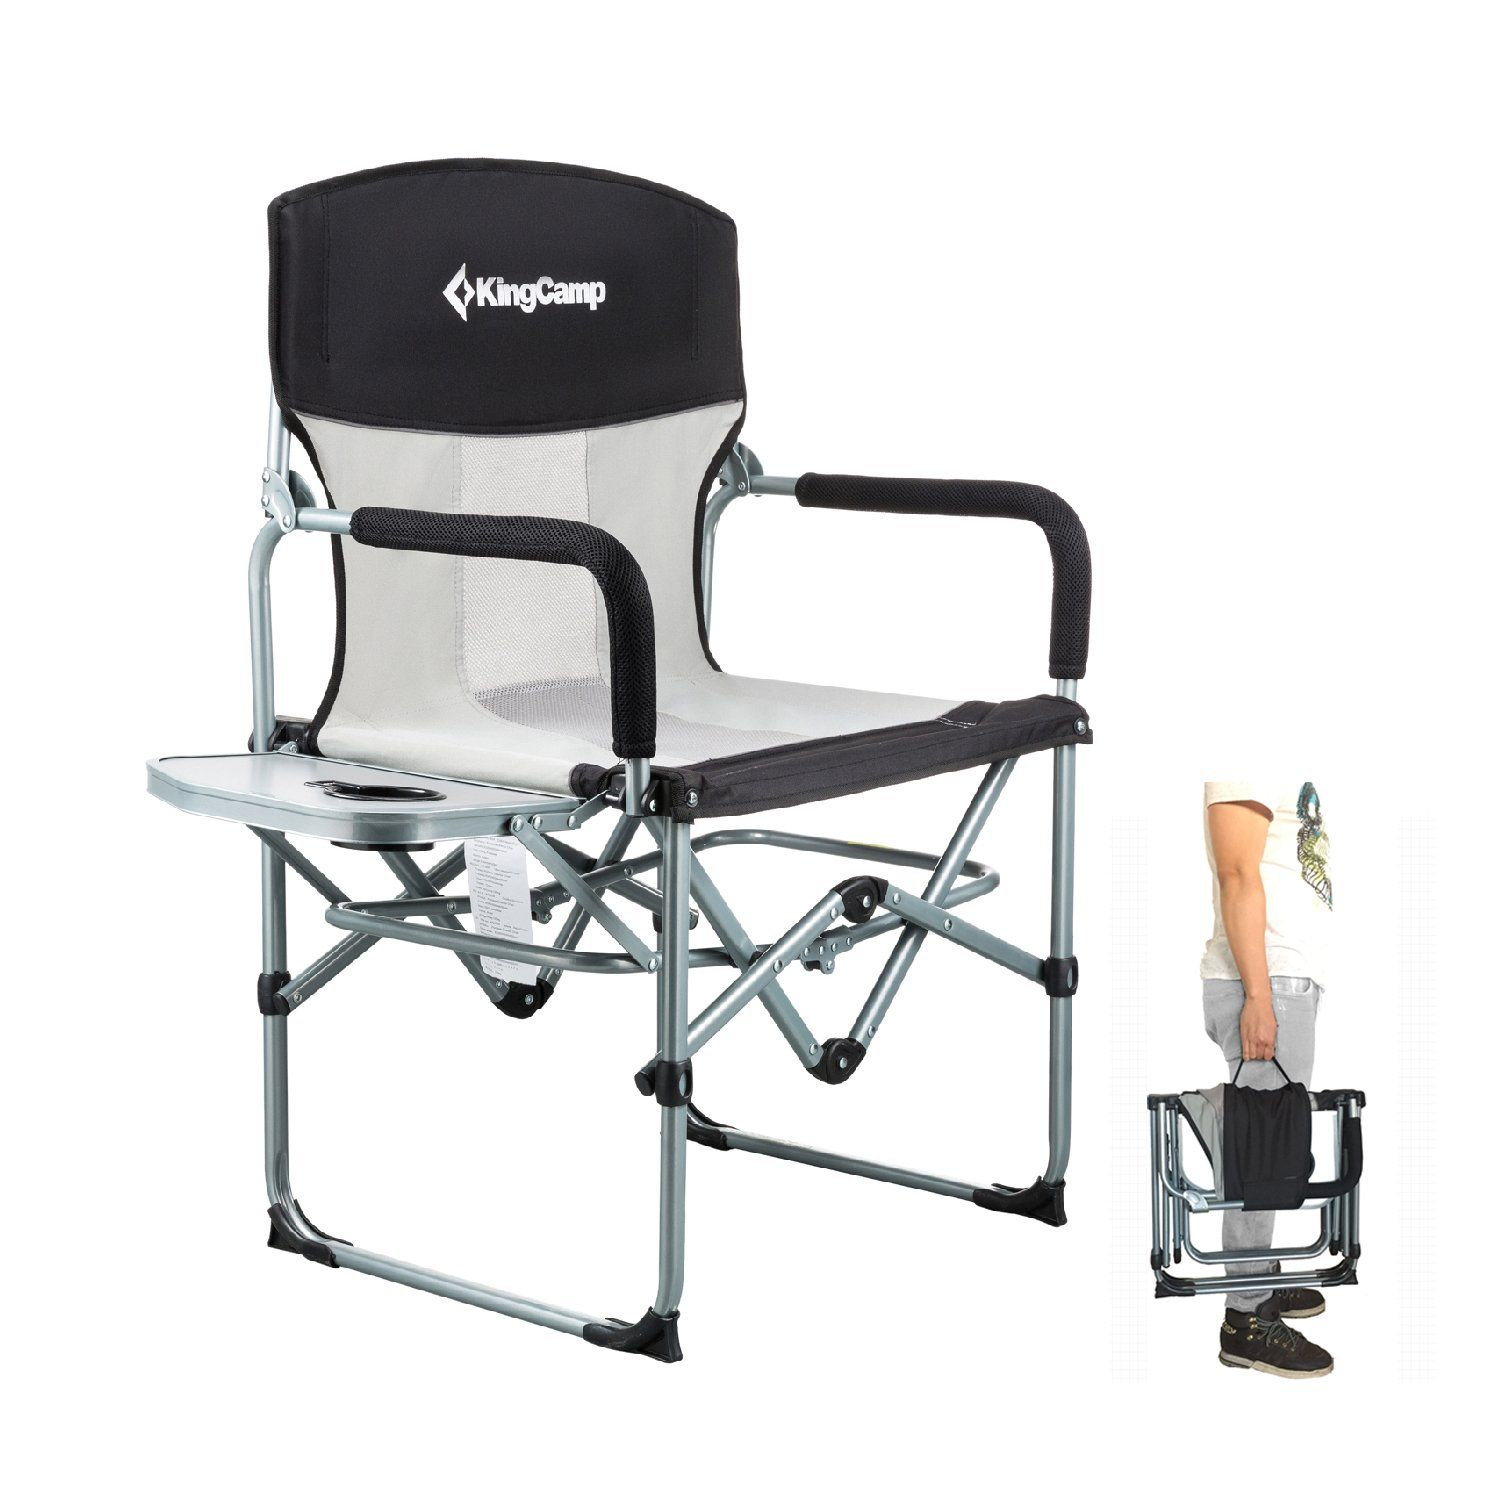 Kingcamp Heavy Duty Compact Camping Folding Mesh Chair With Side Table And Handle You Can Get More Details By Cl Mesh Chair Camping Chairs Camping Furniture